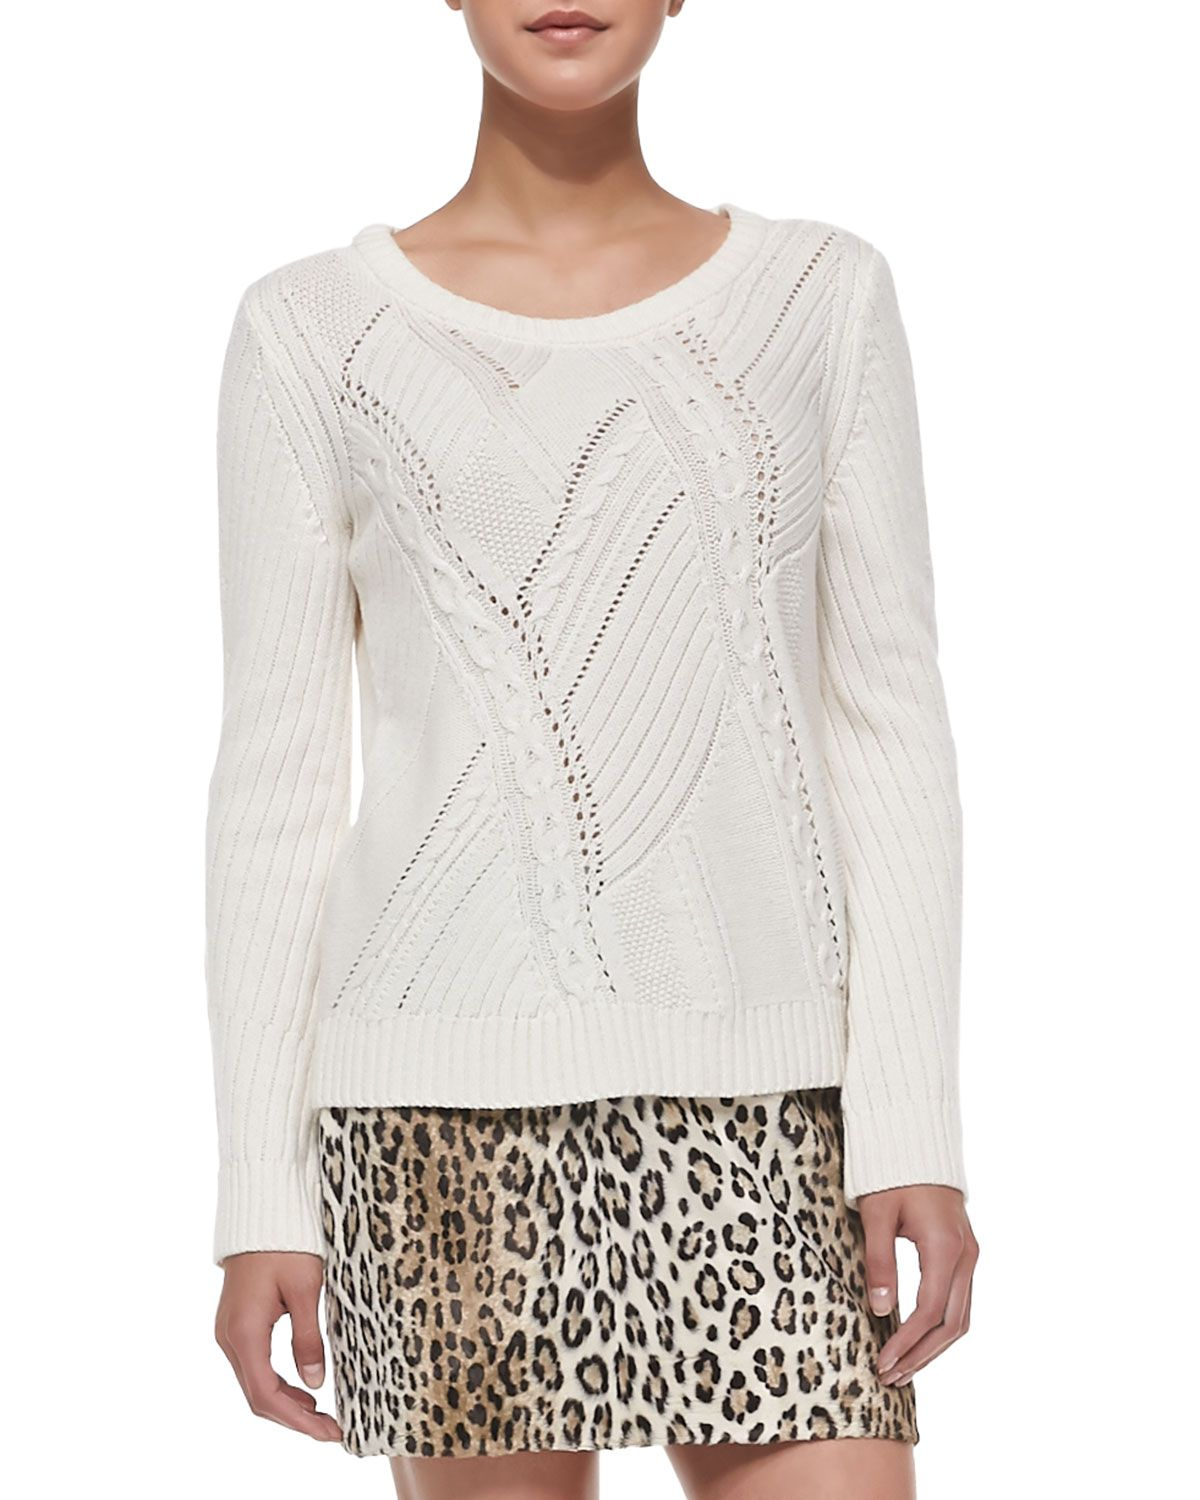 Perforated/Cable-Knit Sweater, Women\'s, Size: L, Ivory - Milly ...